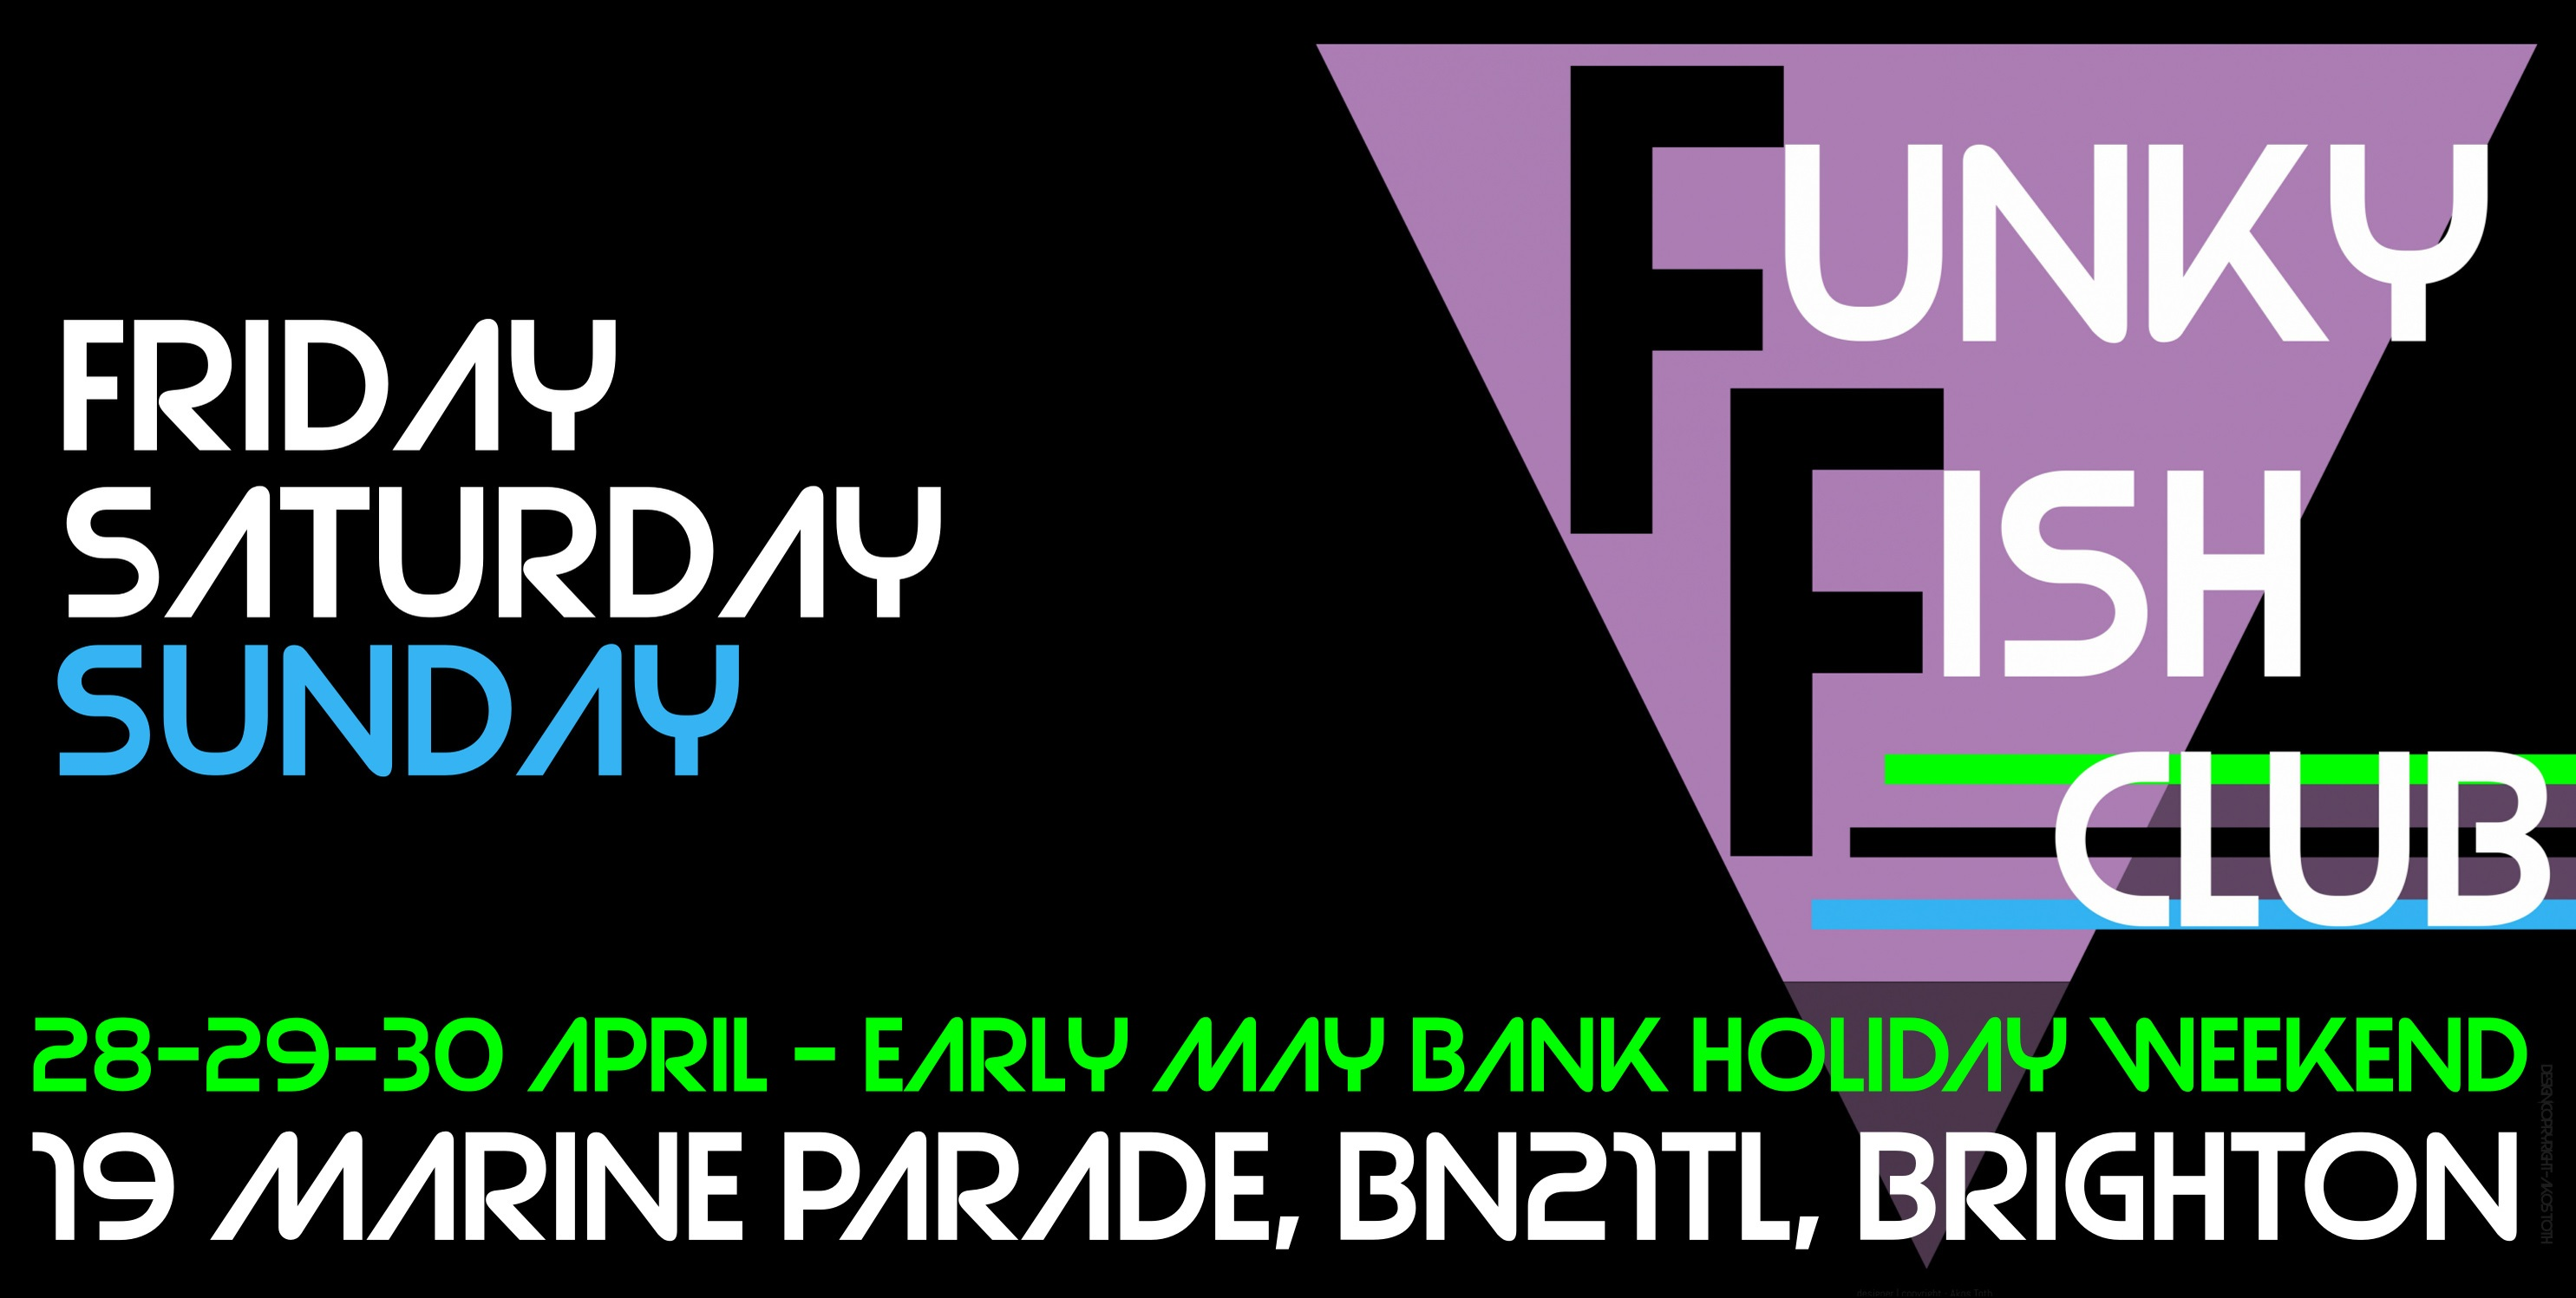 EARLY MAY BANK HOLIDAY WEEKEND